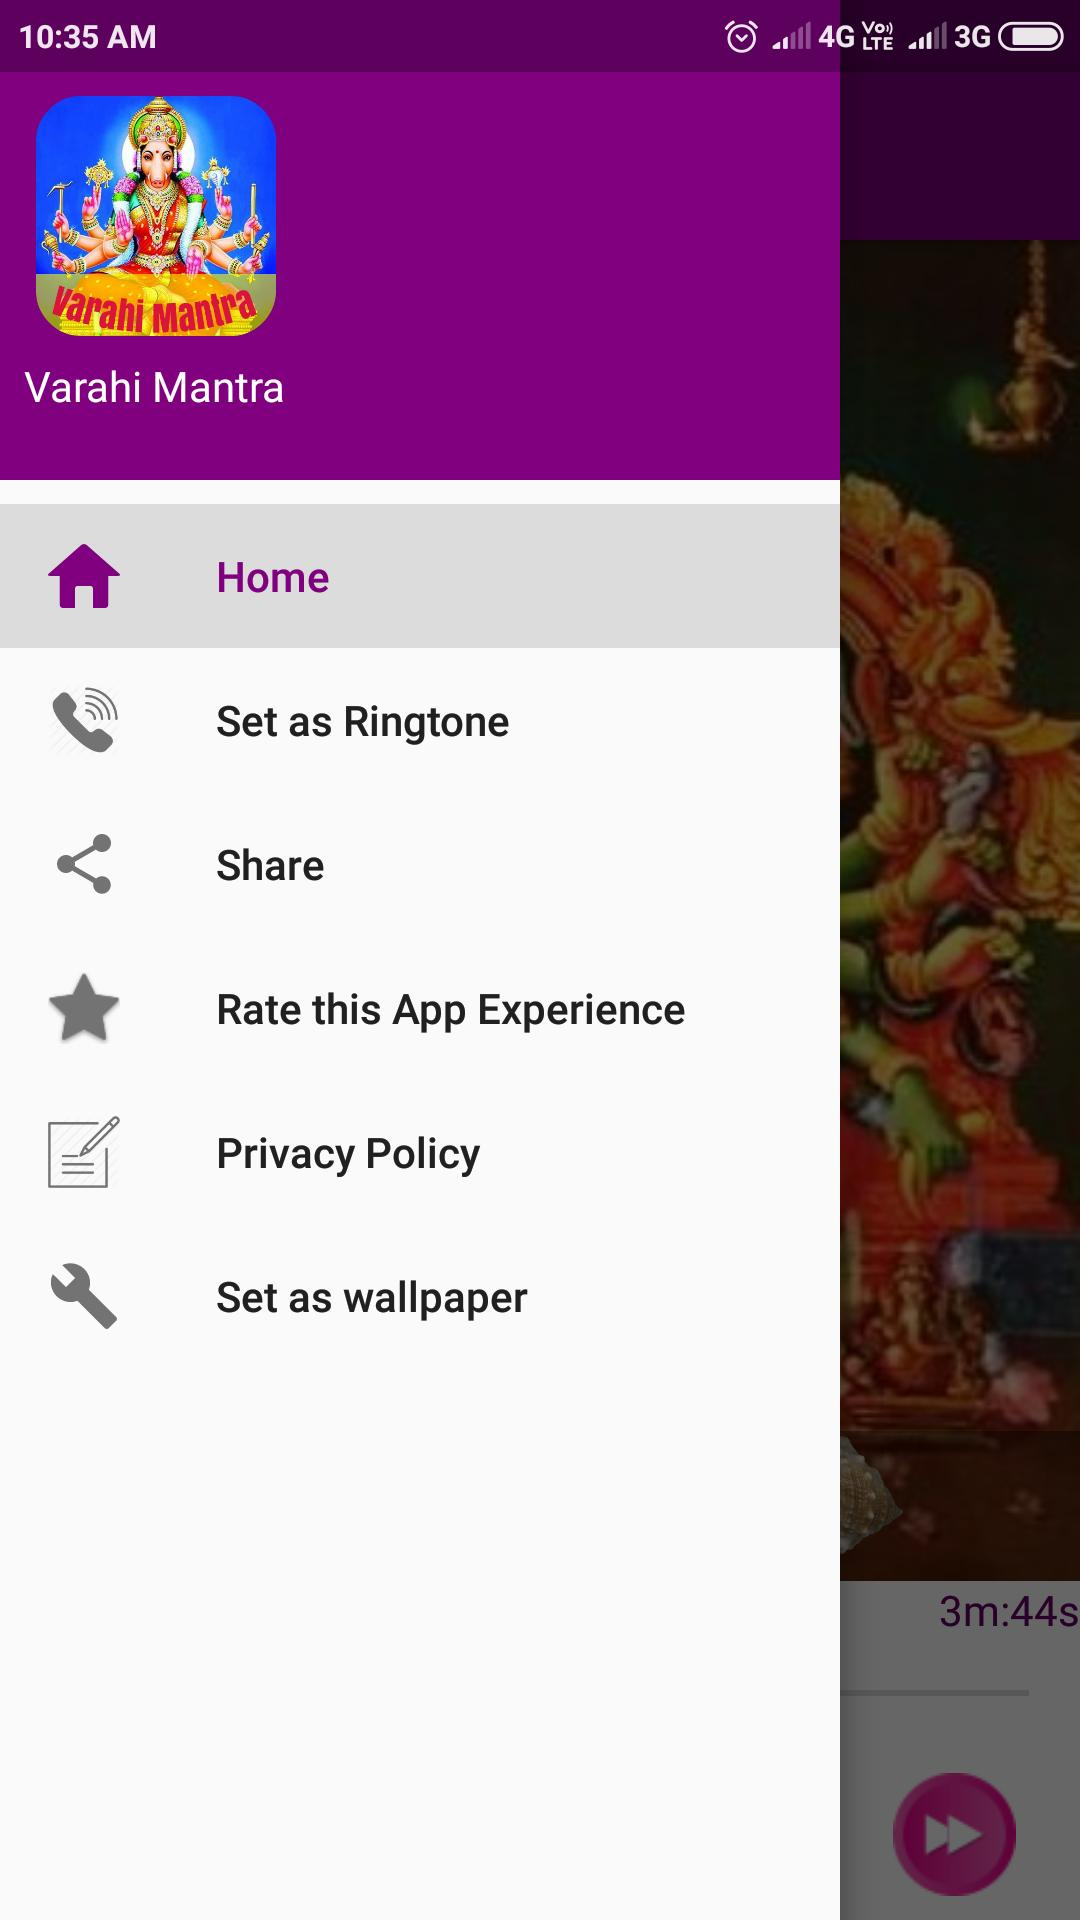 Varahi Mantra for Android - APK Download